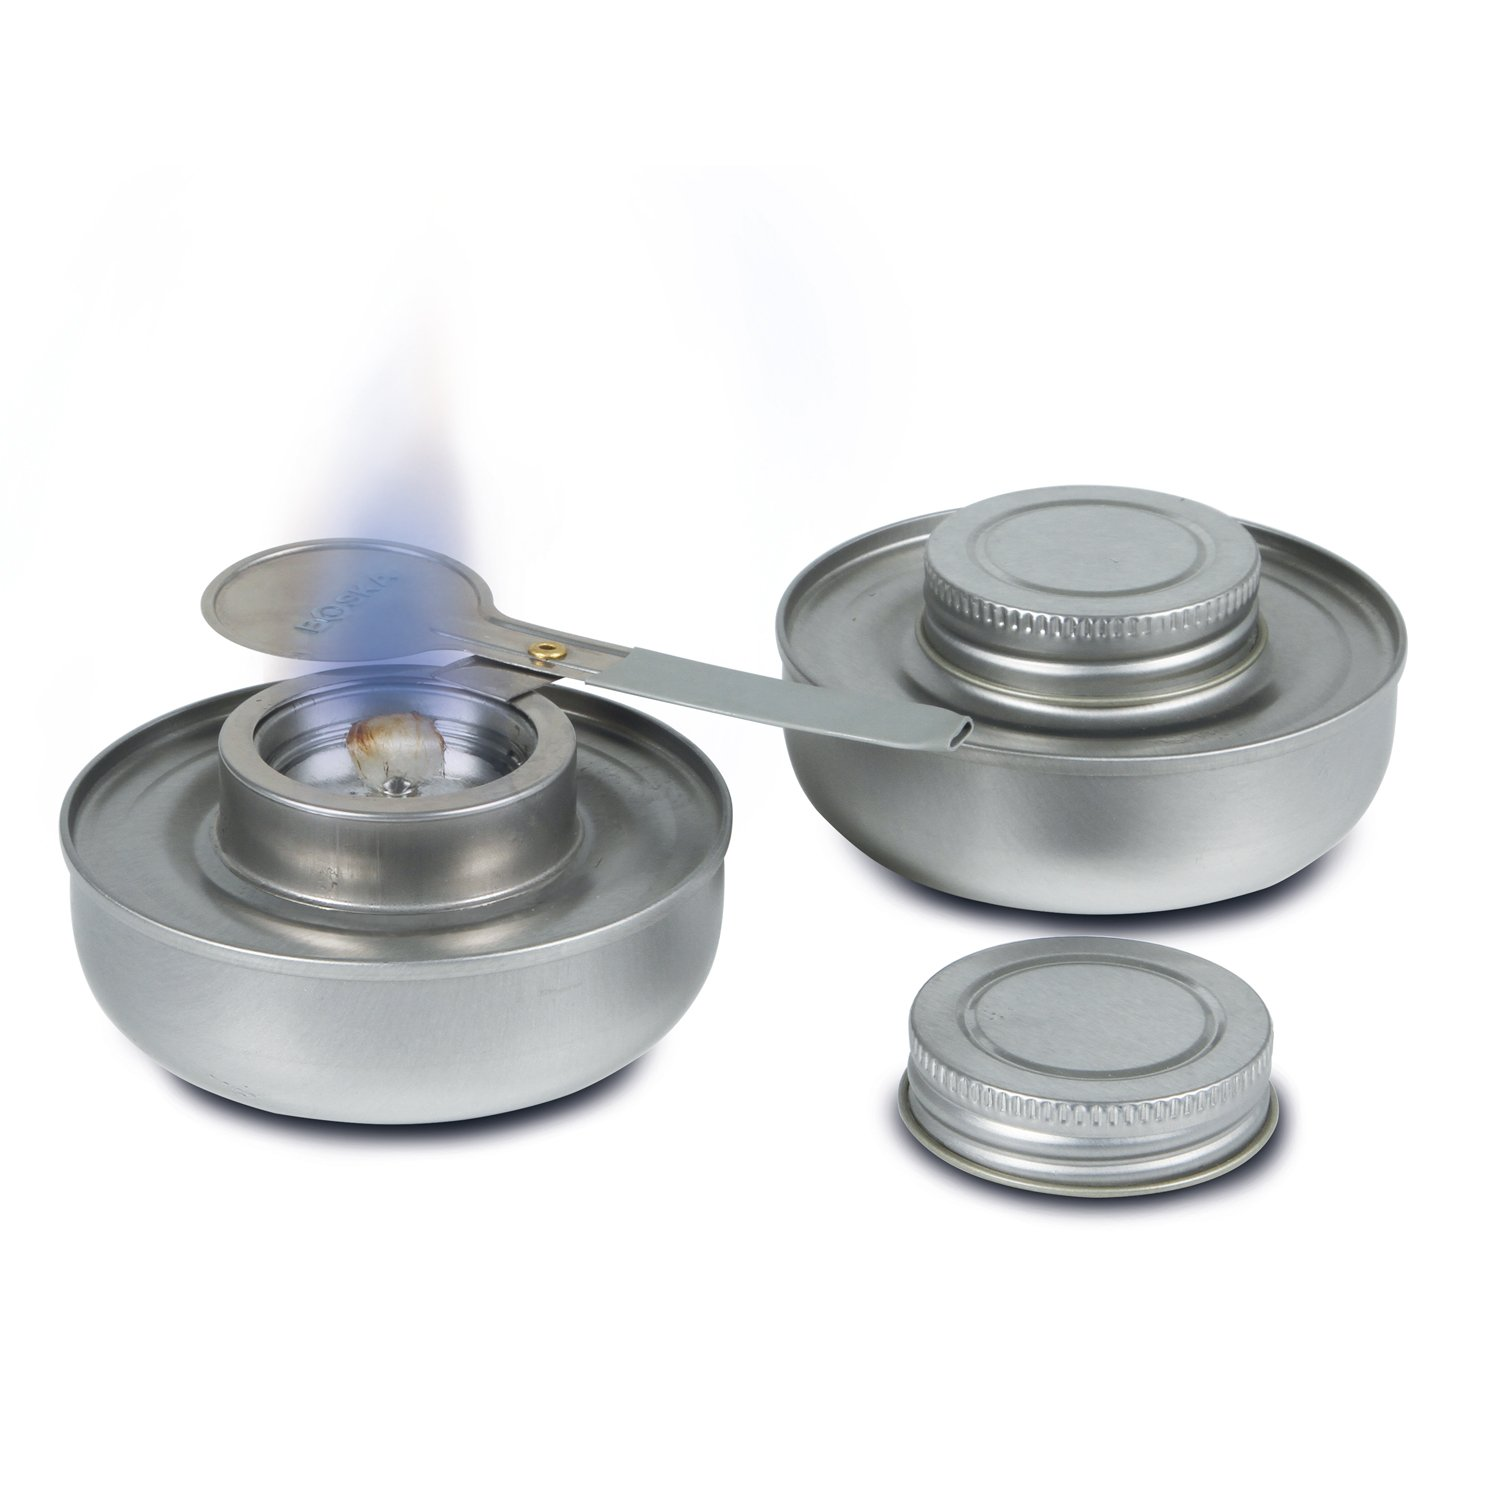 Boska Fondue Burner with Flame Control, Silver 330310